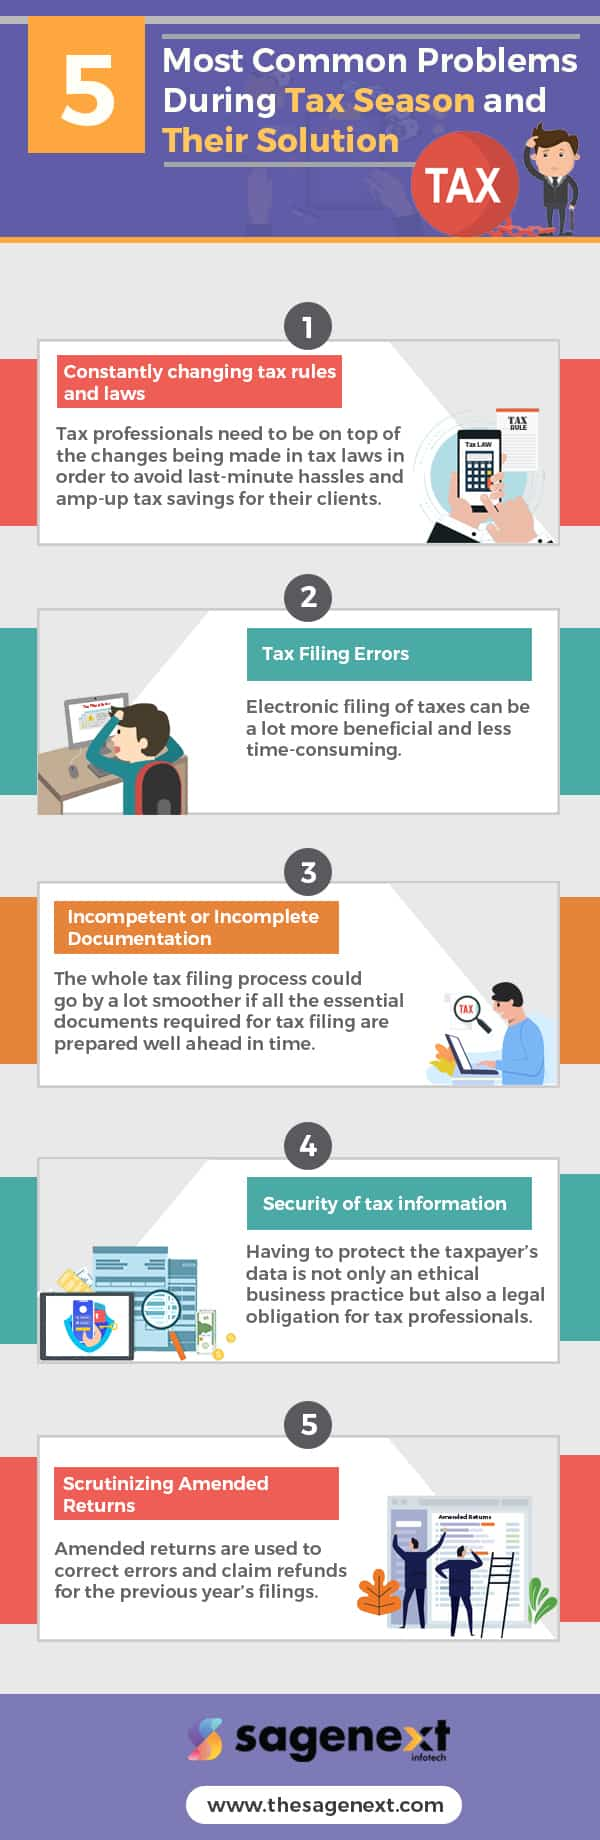 5 Most Common Problems During Tax Season And Their Solutions